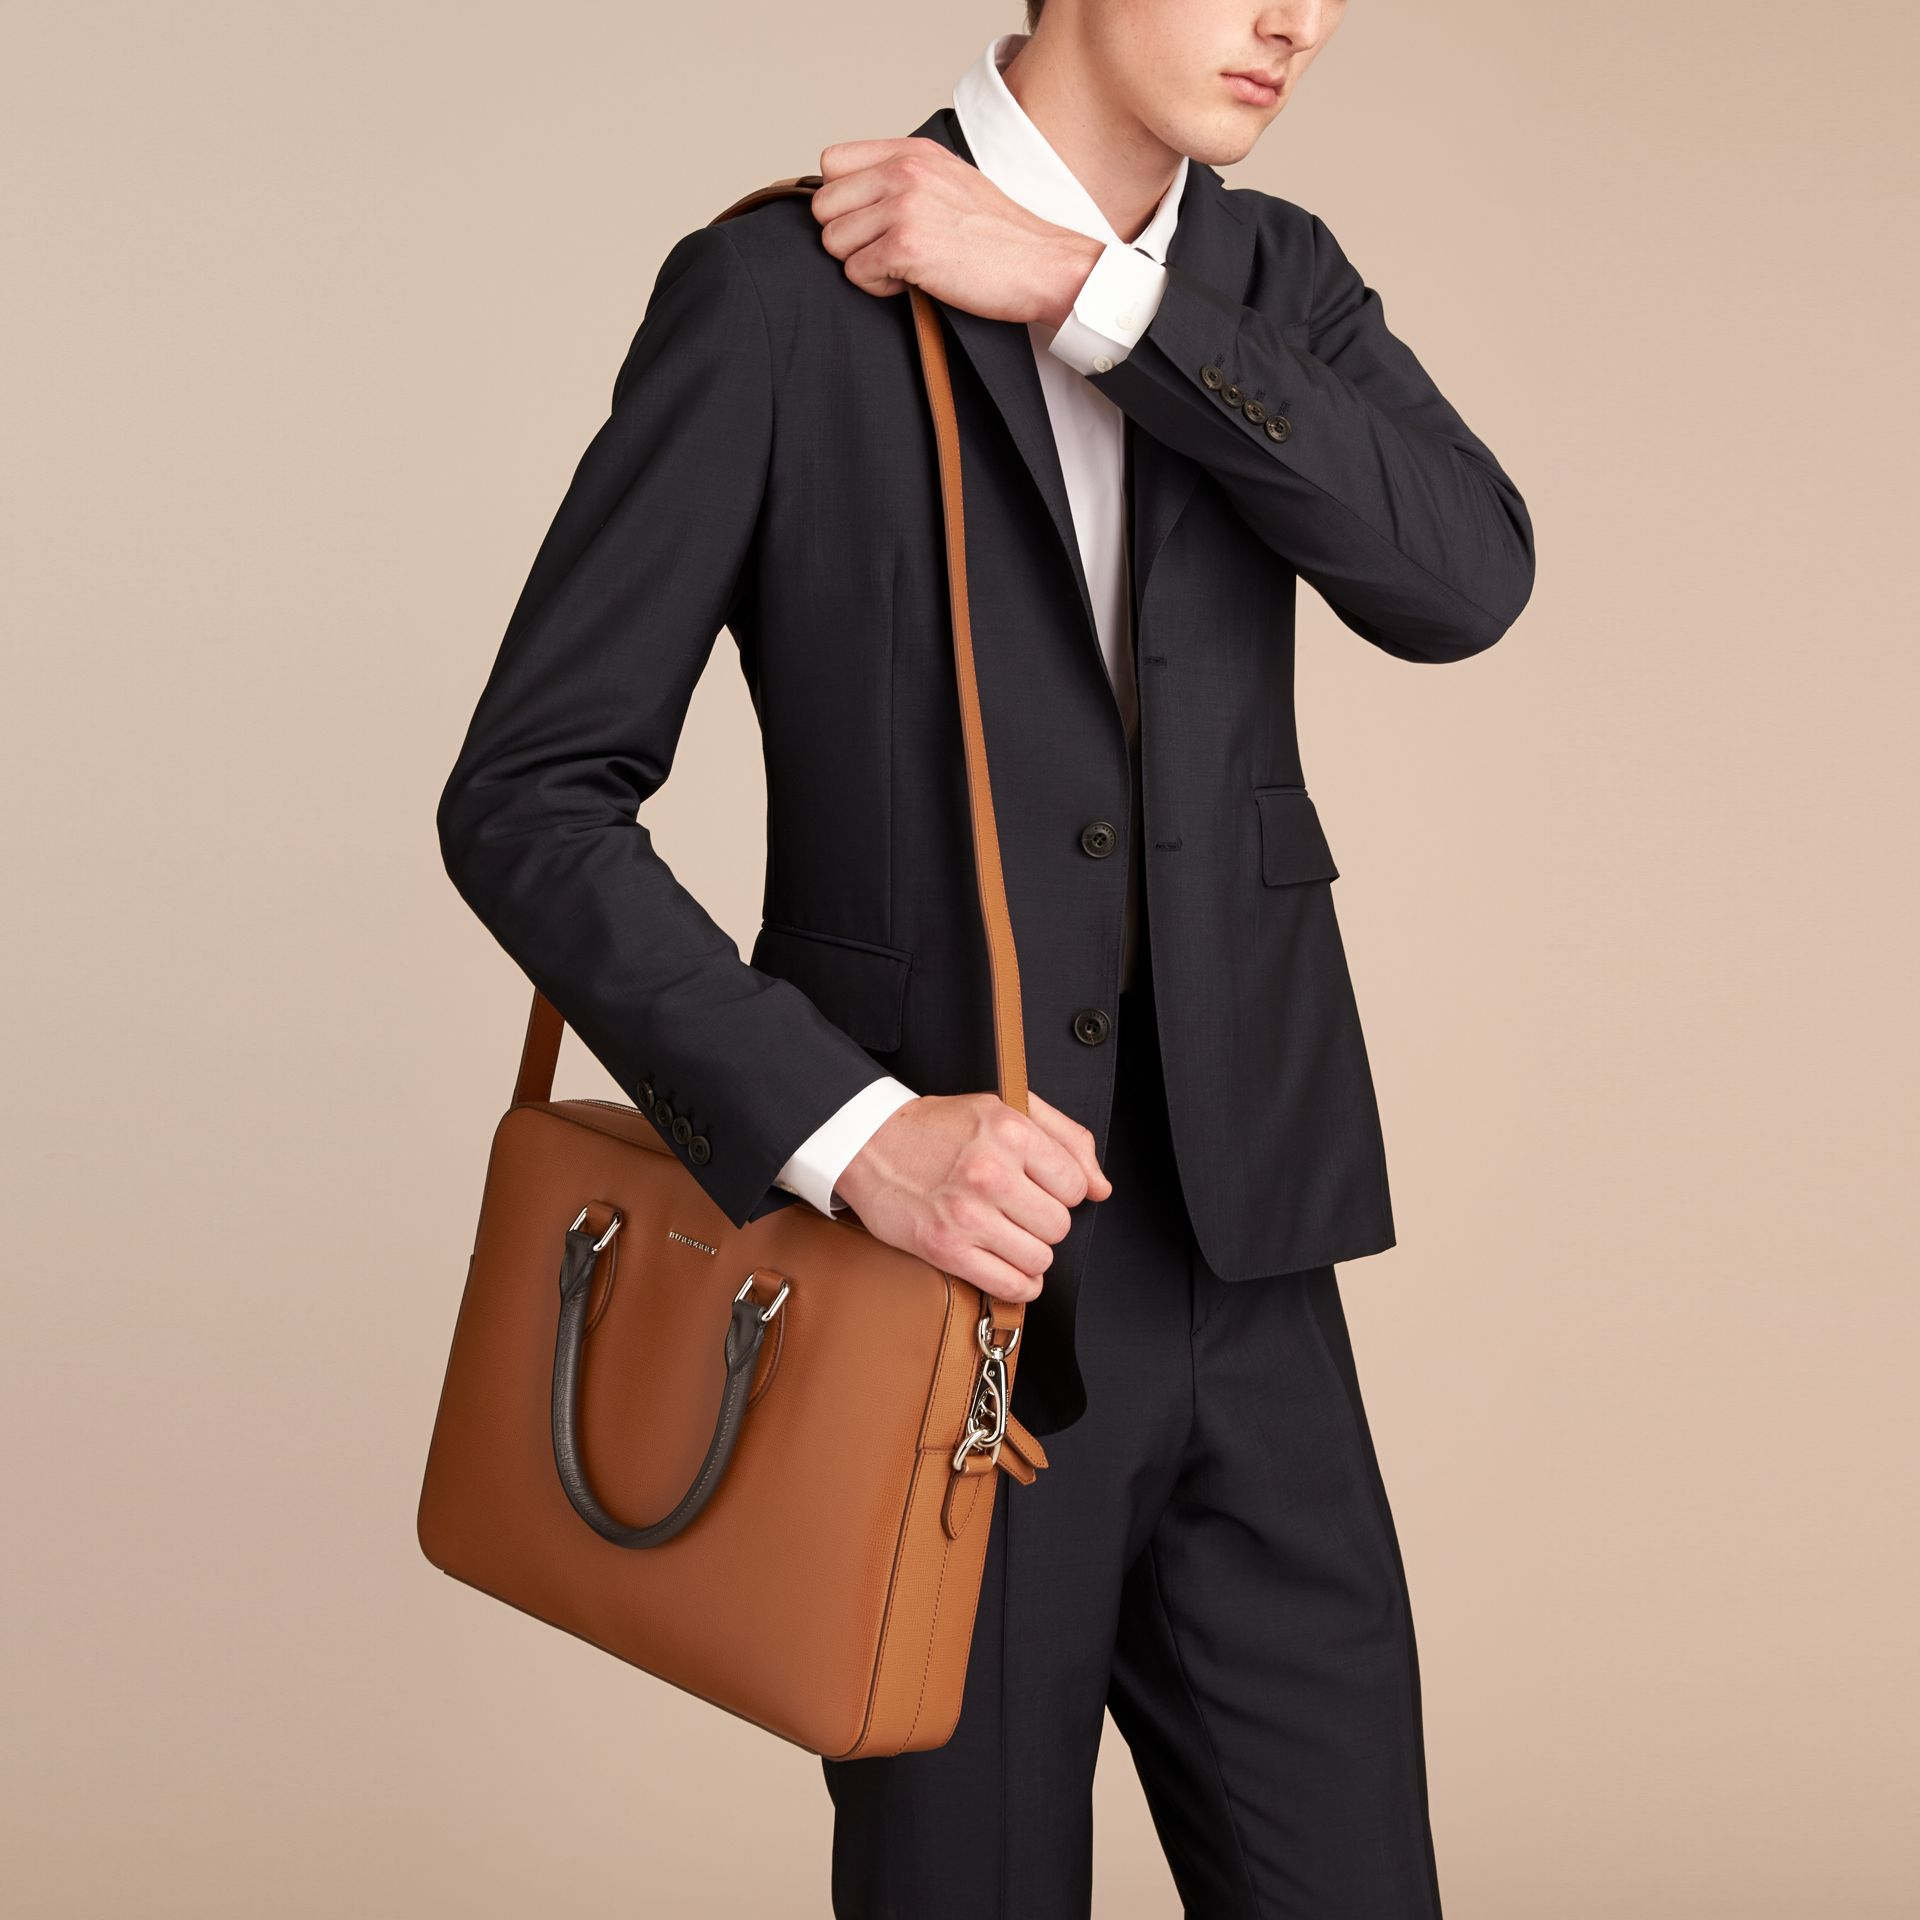 London Leather Briefcase in Tan/chocolate - Men | Burberry United Kingdom - gallery image 4